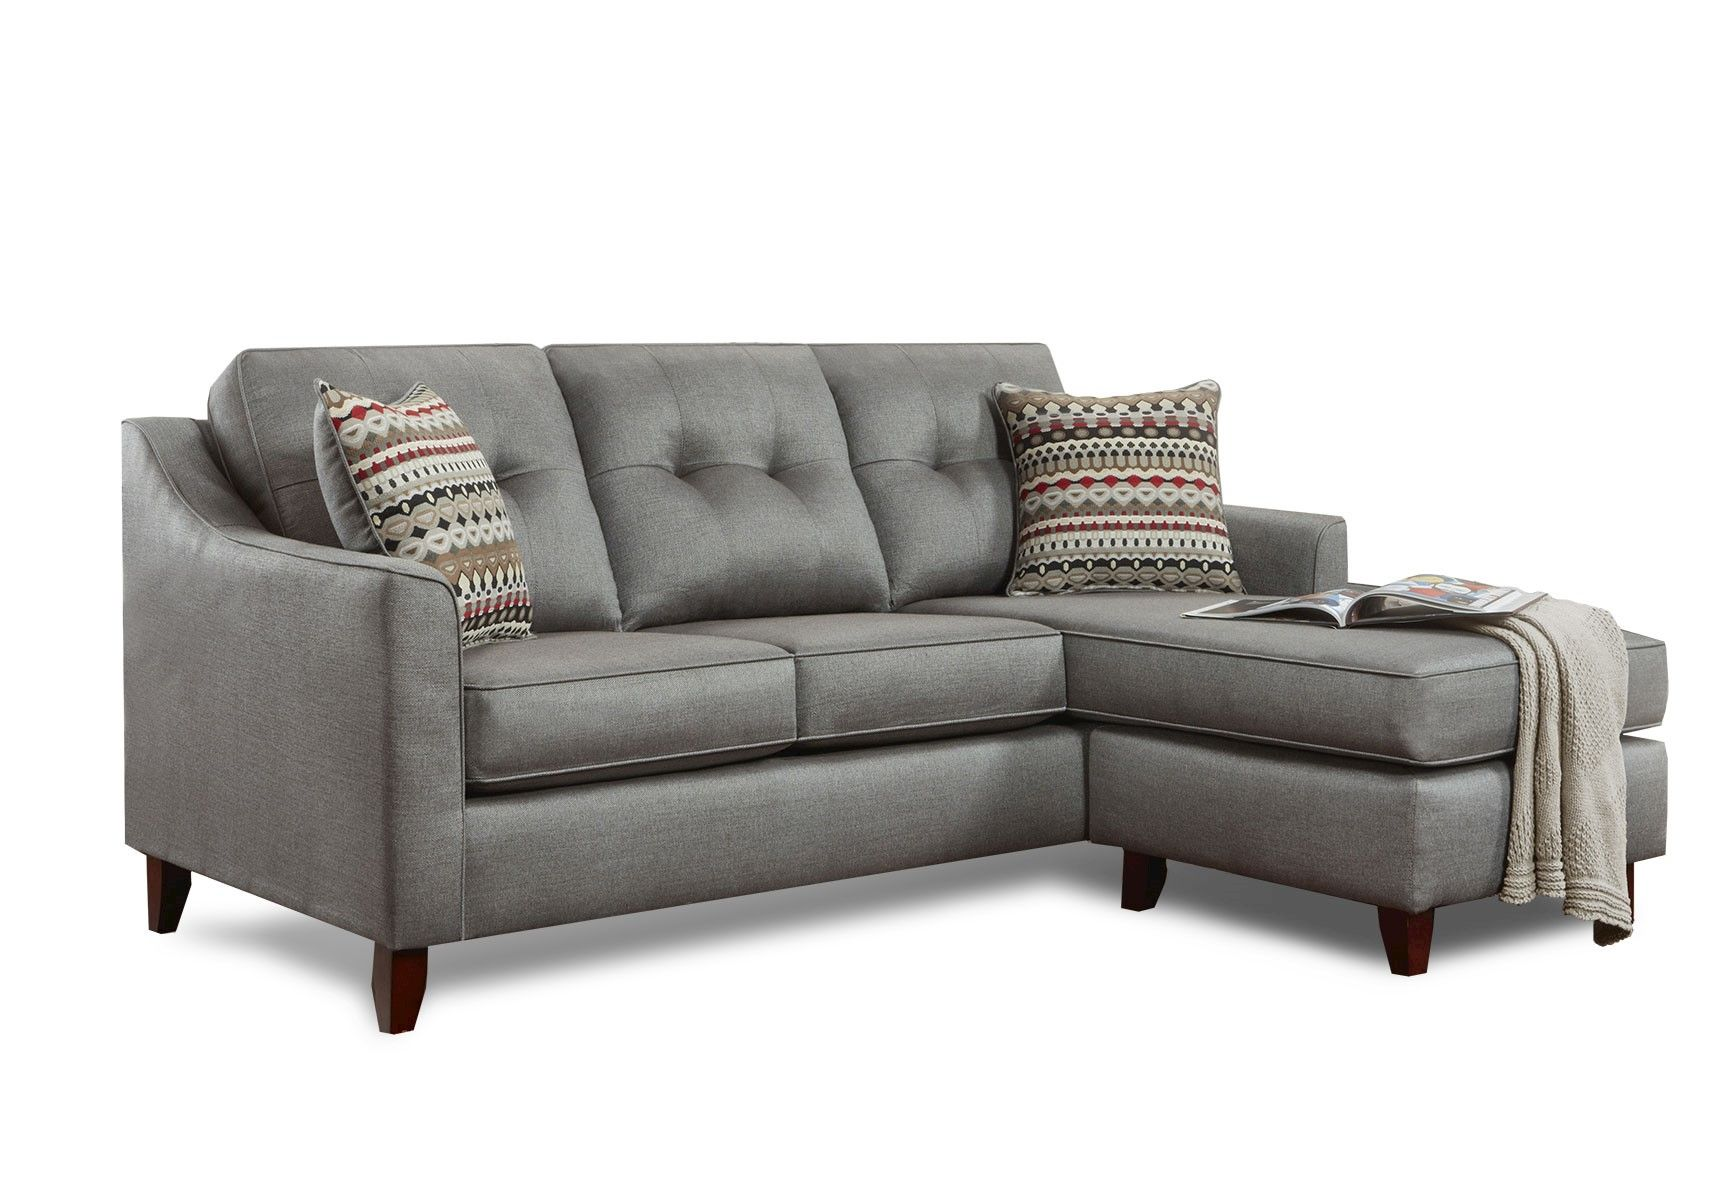 Lacks Caspar Sofa With Chaise